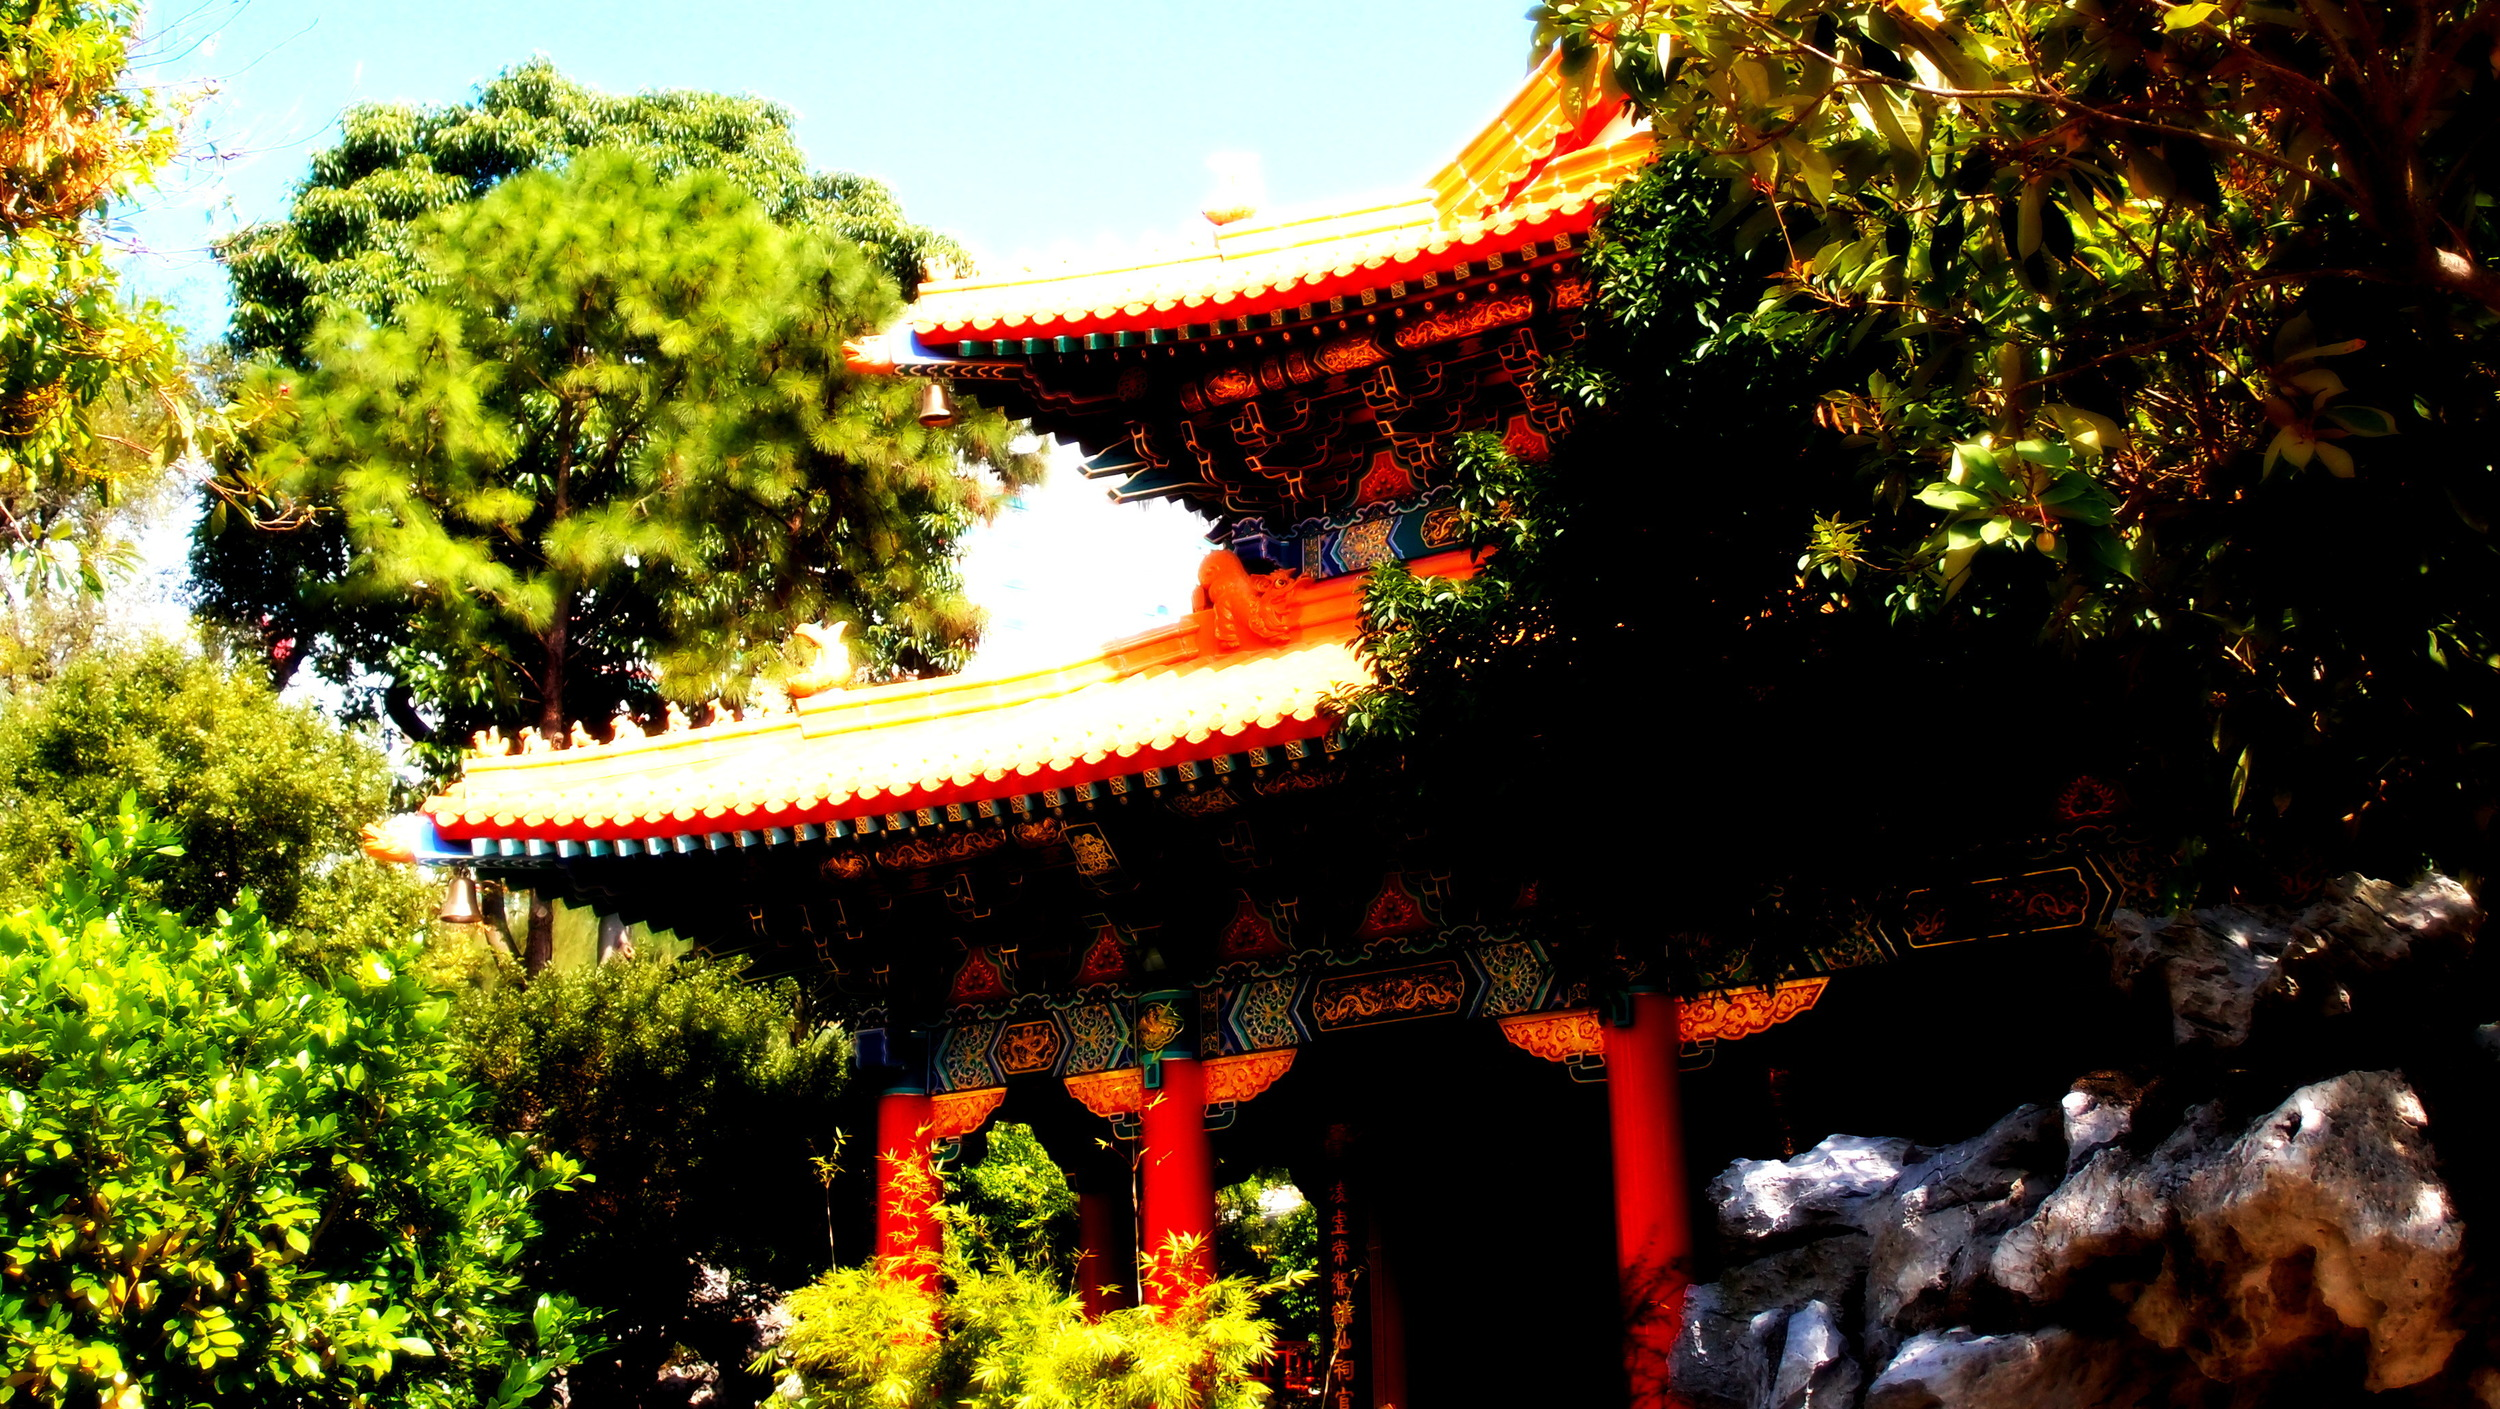 The amazing Sik Sik Yuen Wong Tai Sin Temple